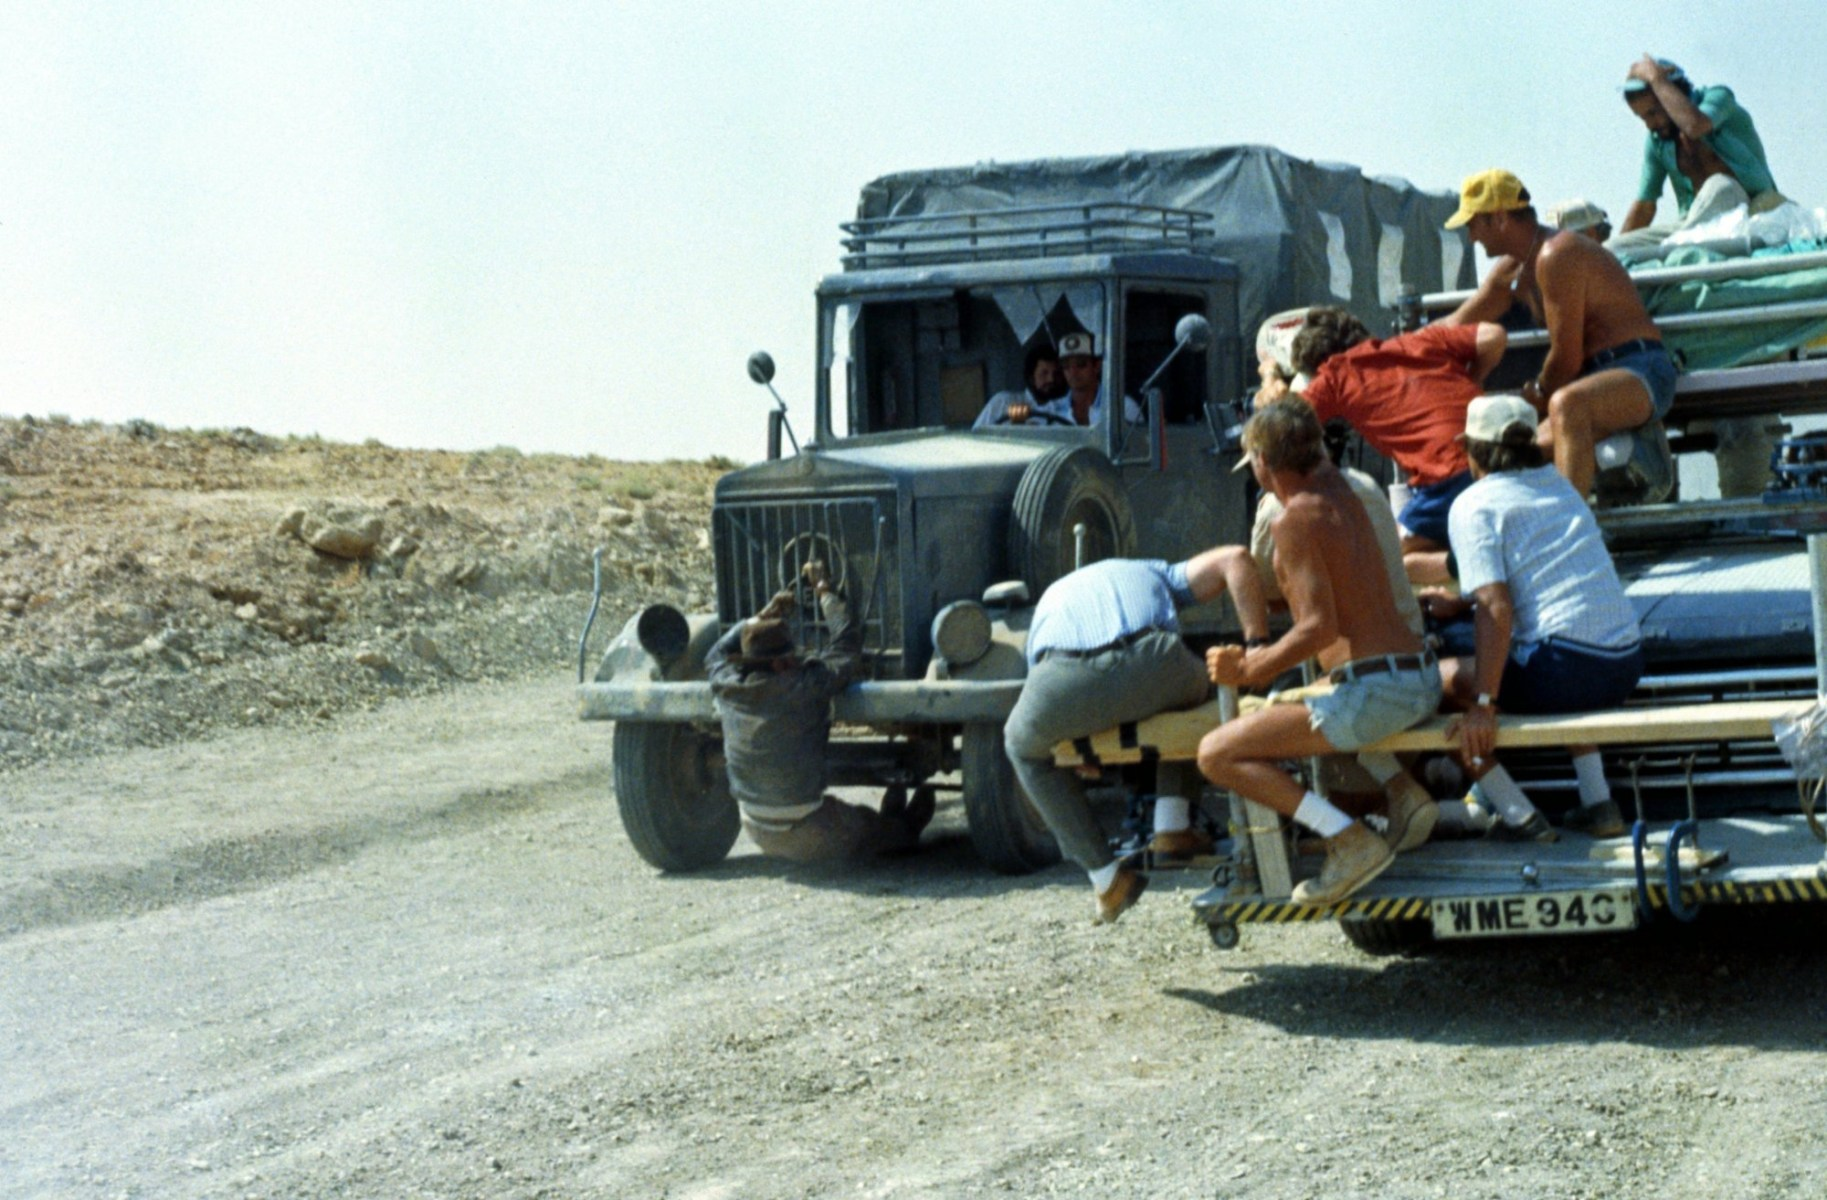 On Location : Raiders of the Lost Ark (1981) Behind the Scenes